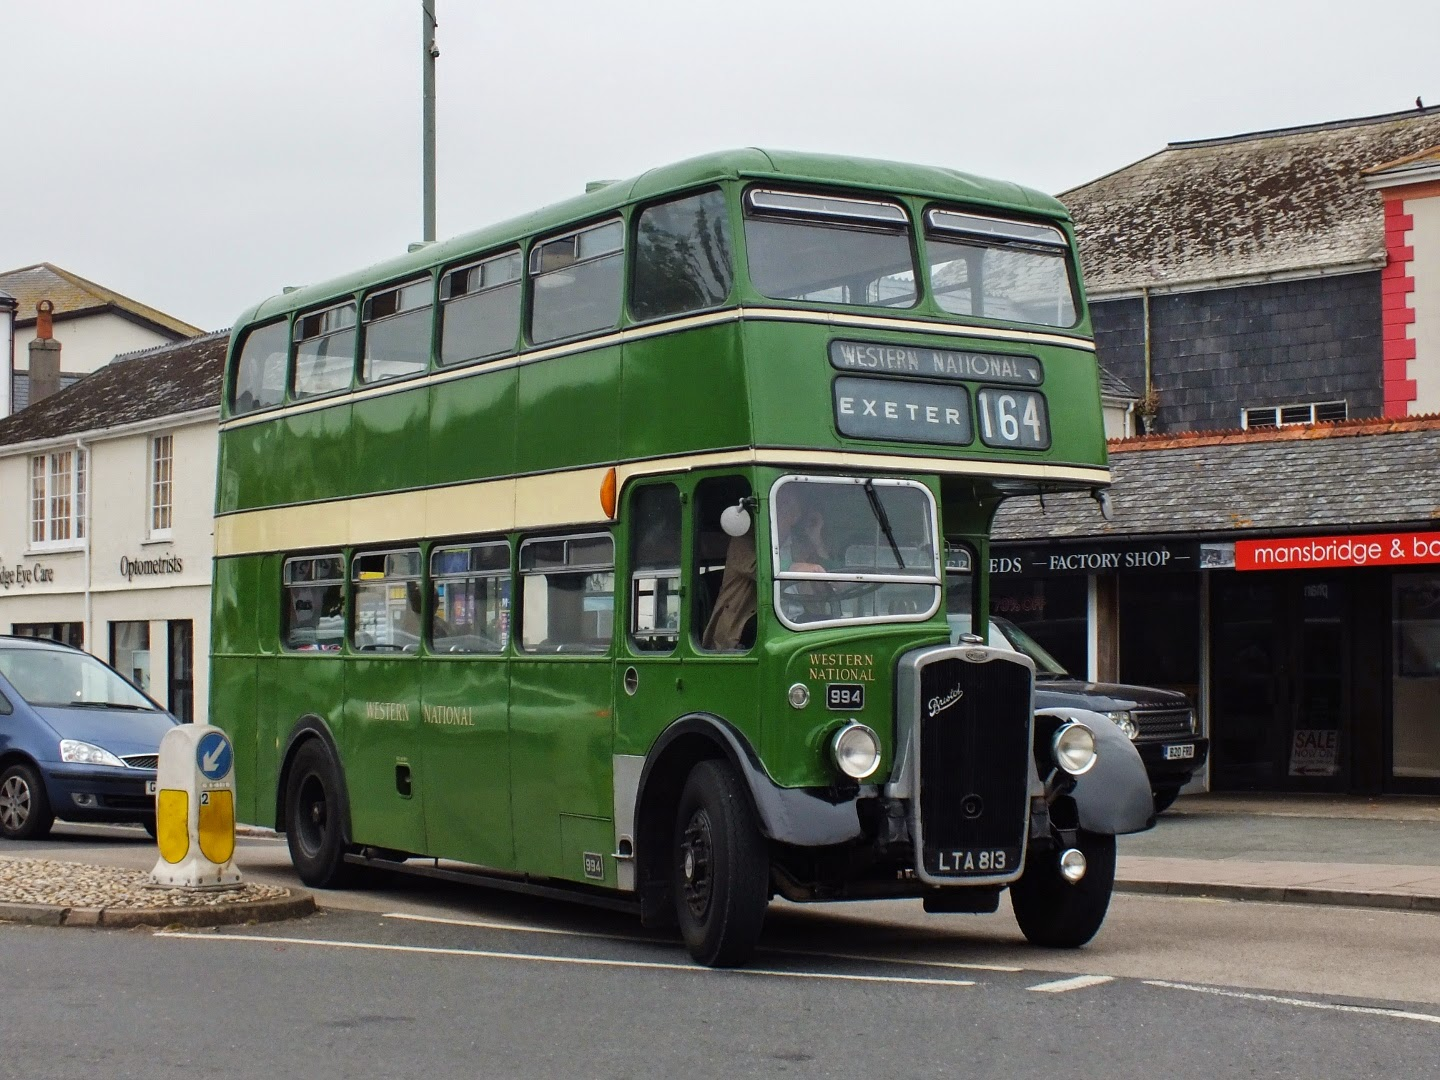 hight resolution of my final run of the day was on roger burdett s excellent western national 994 lta 813 a 1950 ks5g showing how with the longer length ecw also tidied up